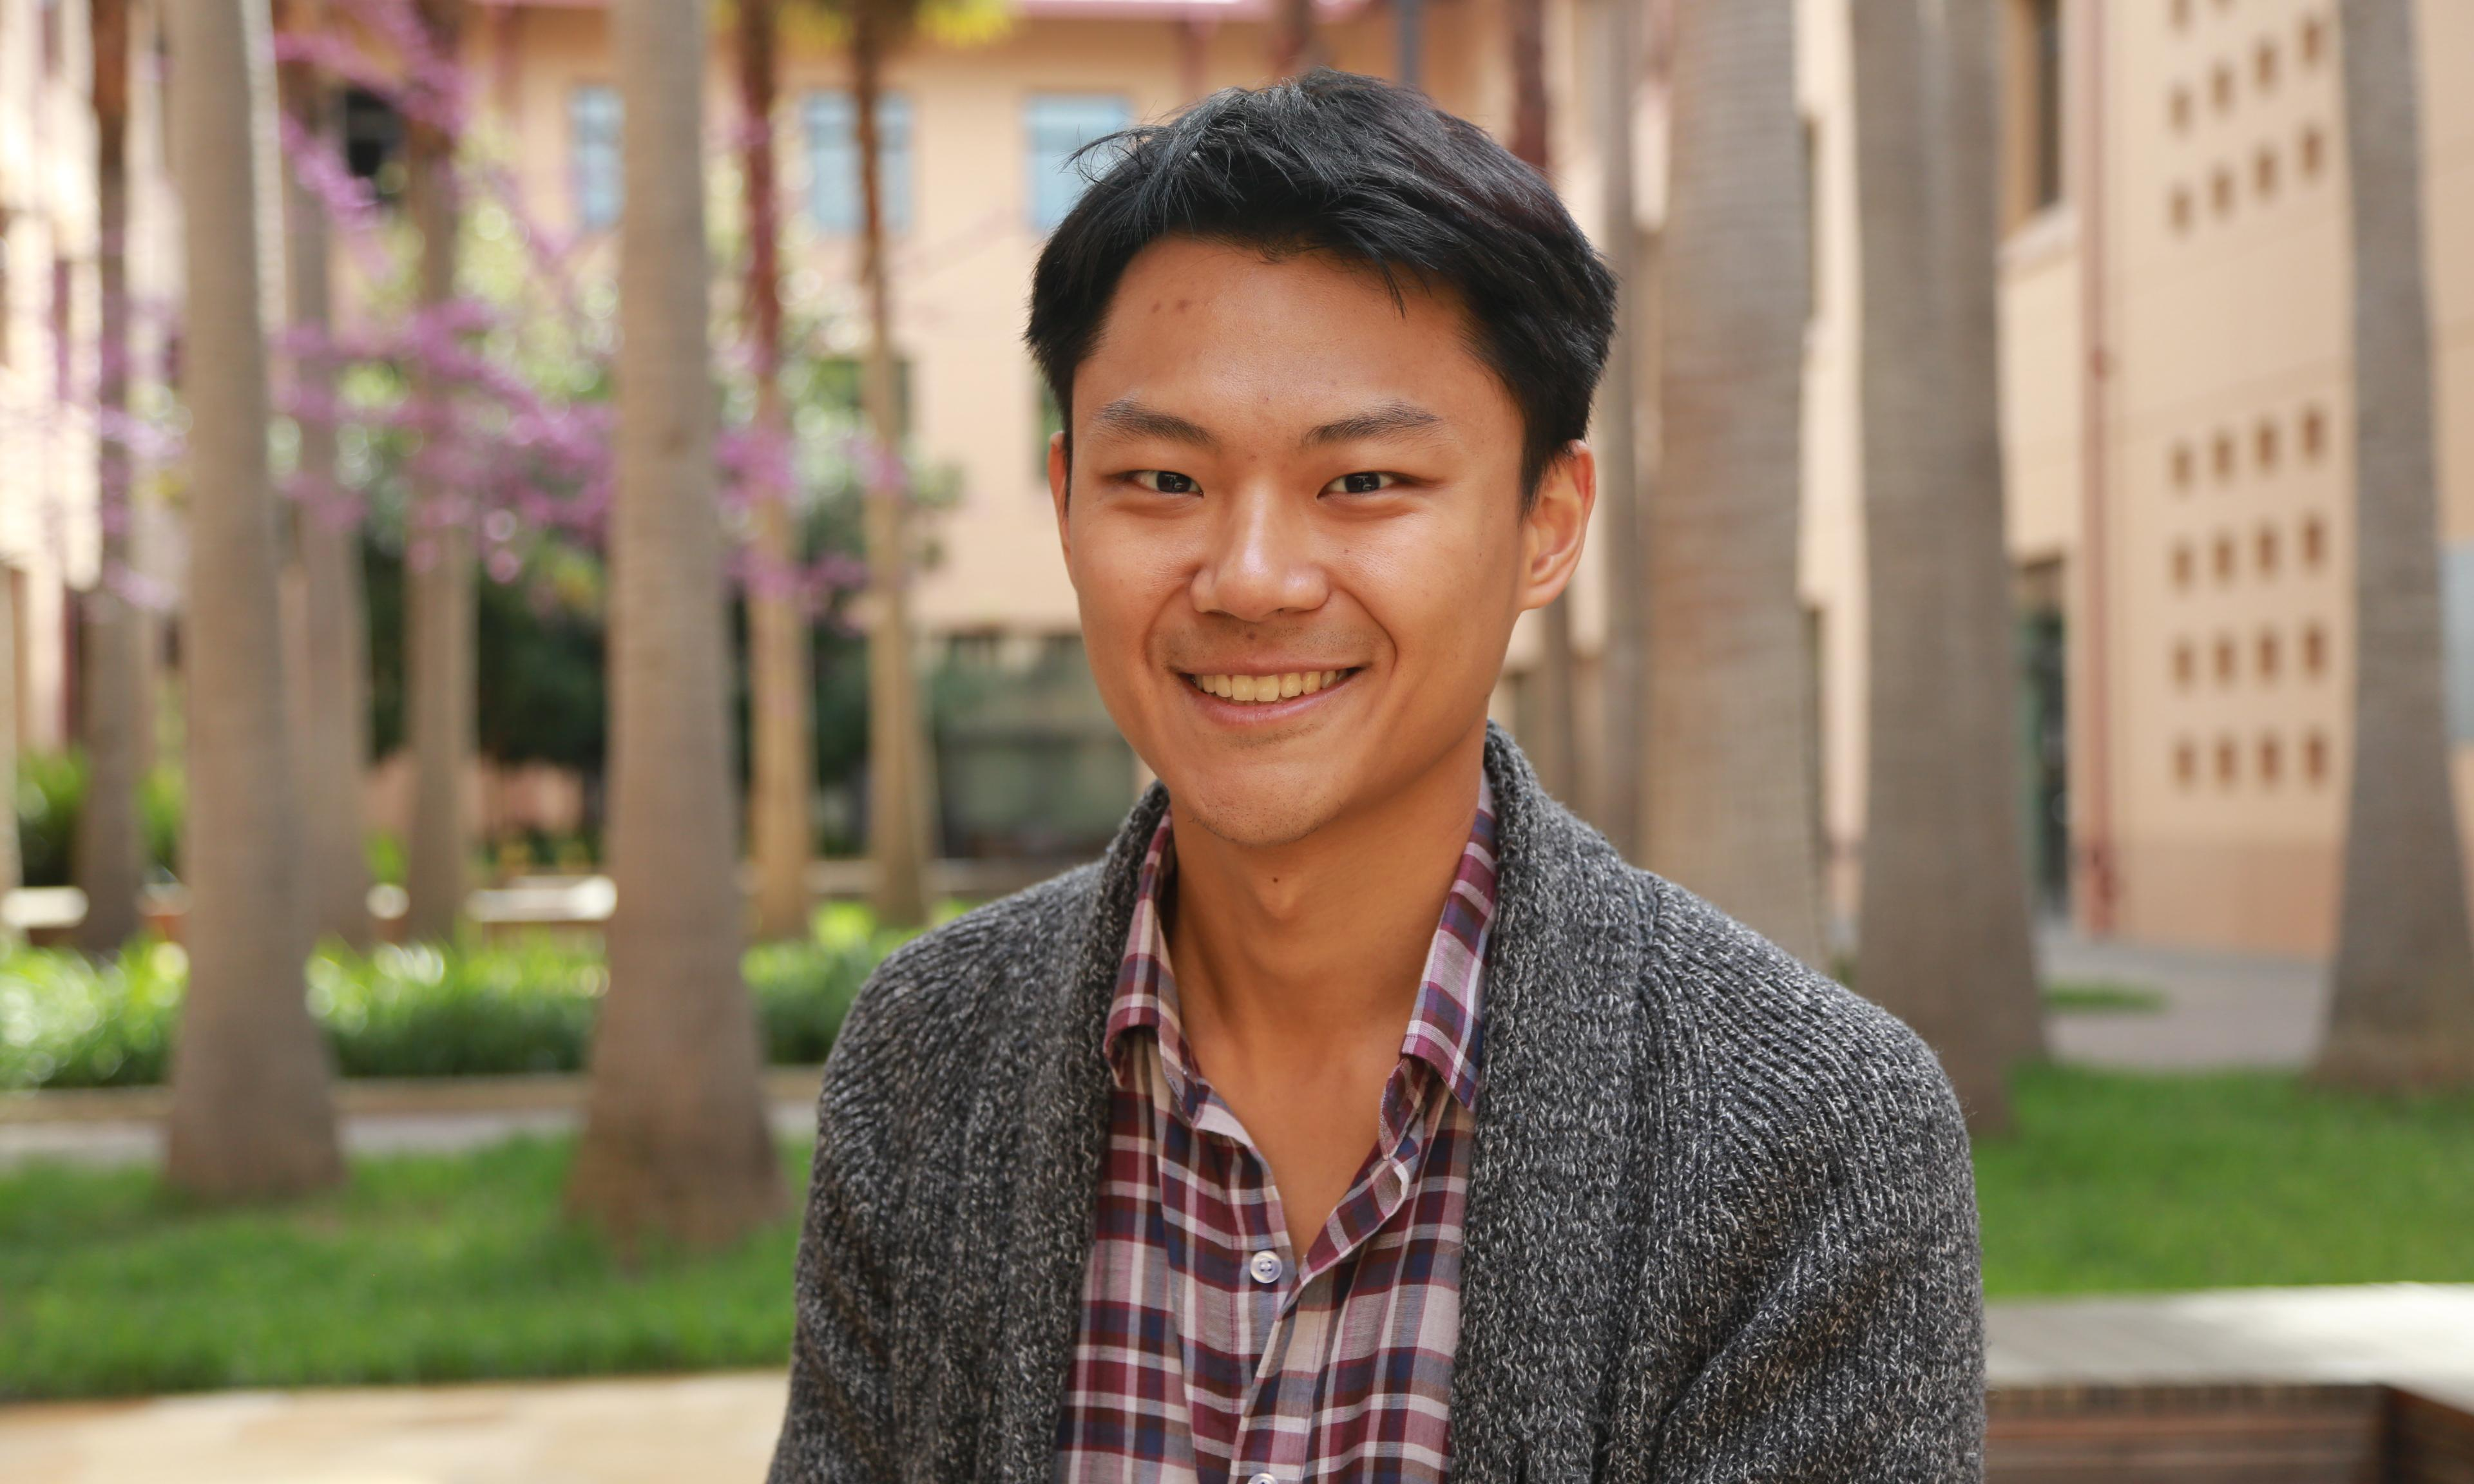 Yiming Ma's 'deeply melancholy' tale wins BAME short story prize